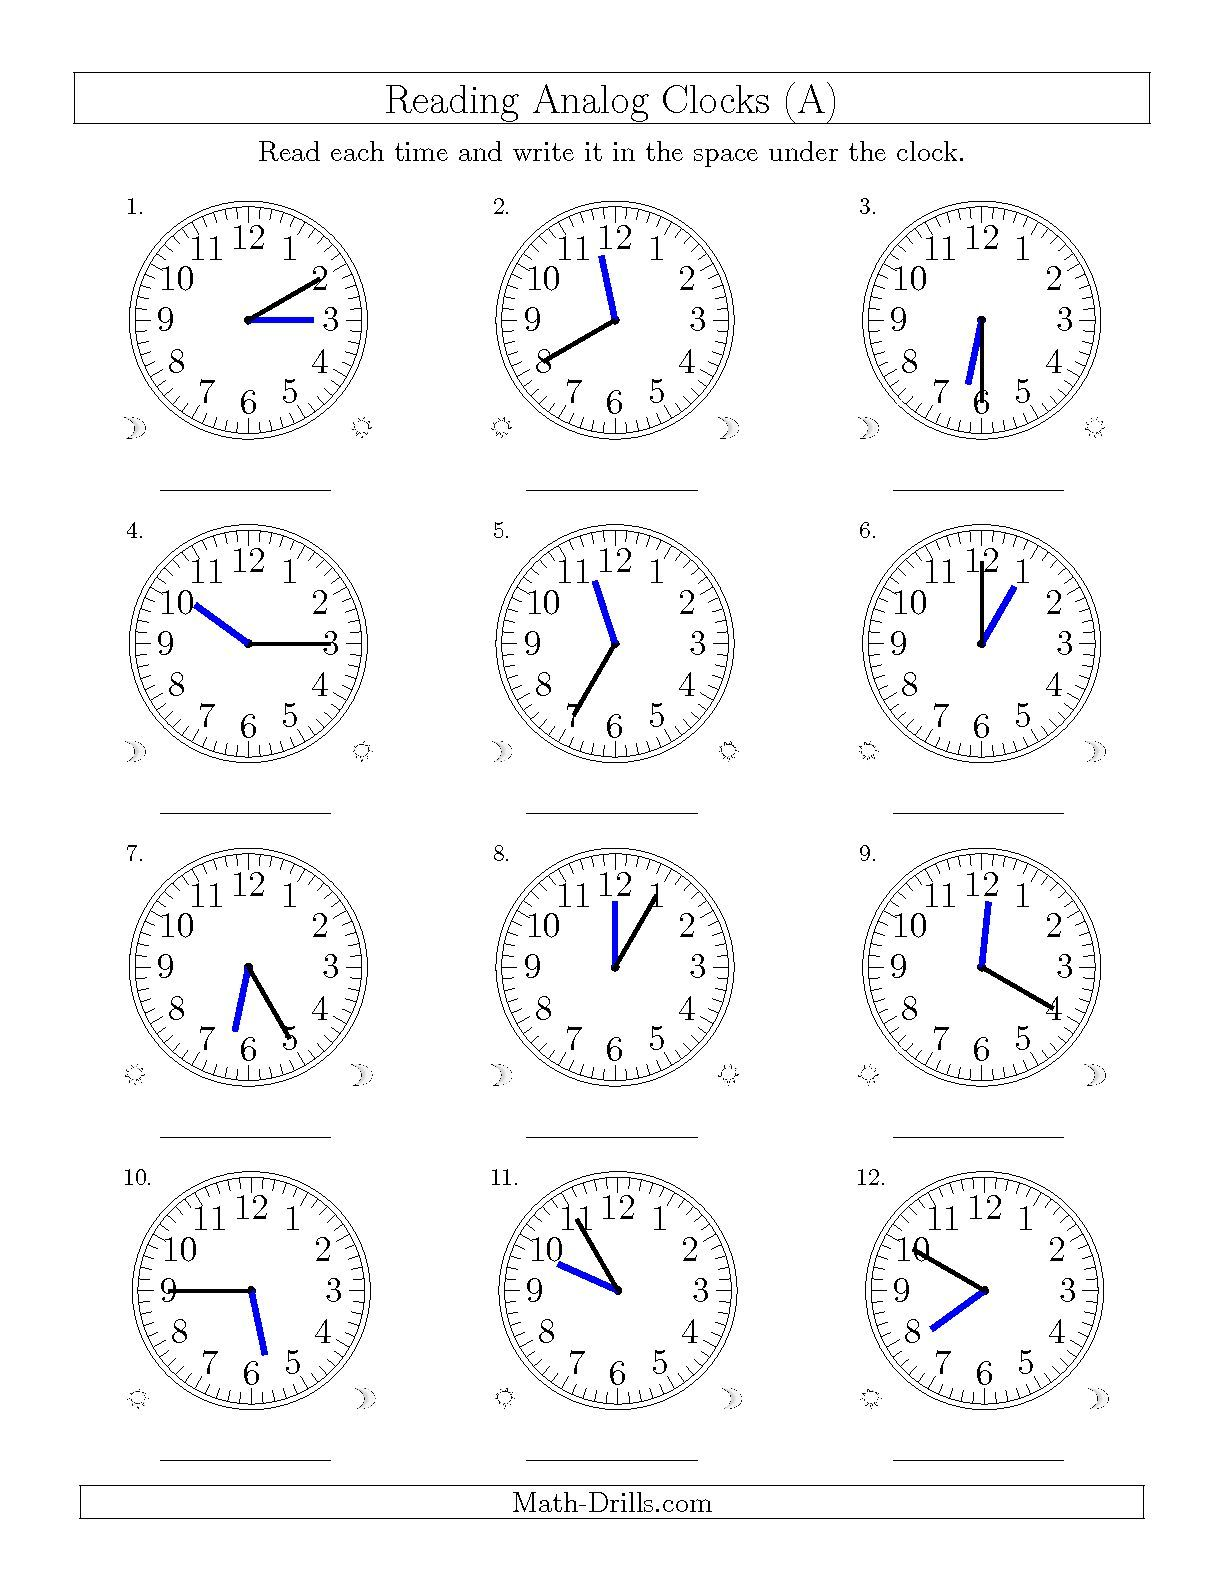 The Reading Time On 12 Hourog Clocks In 5 Minute